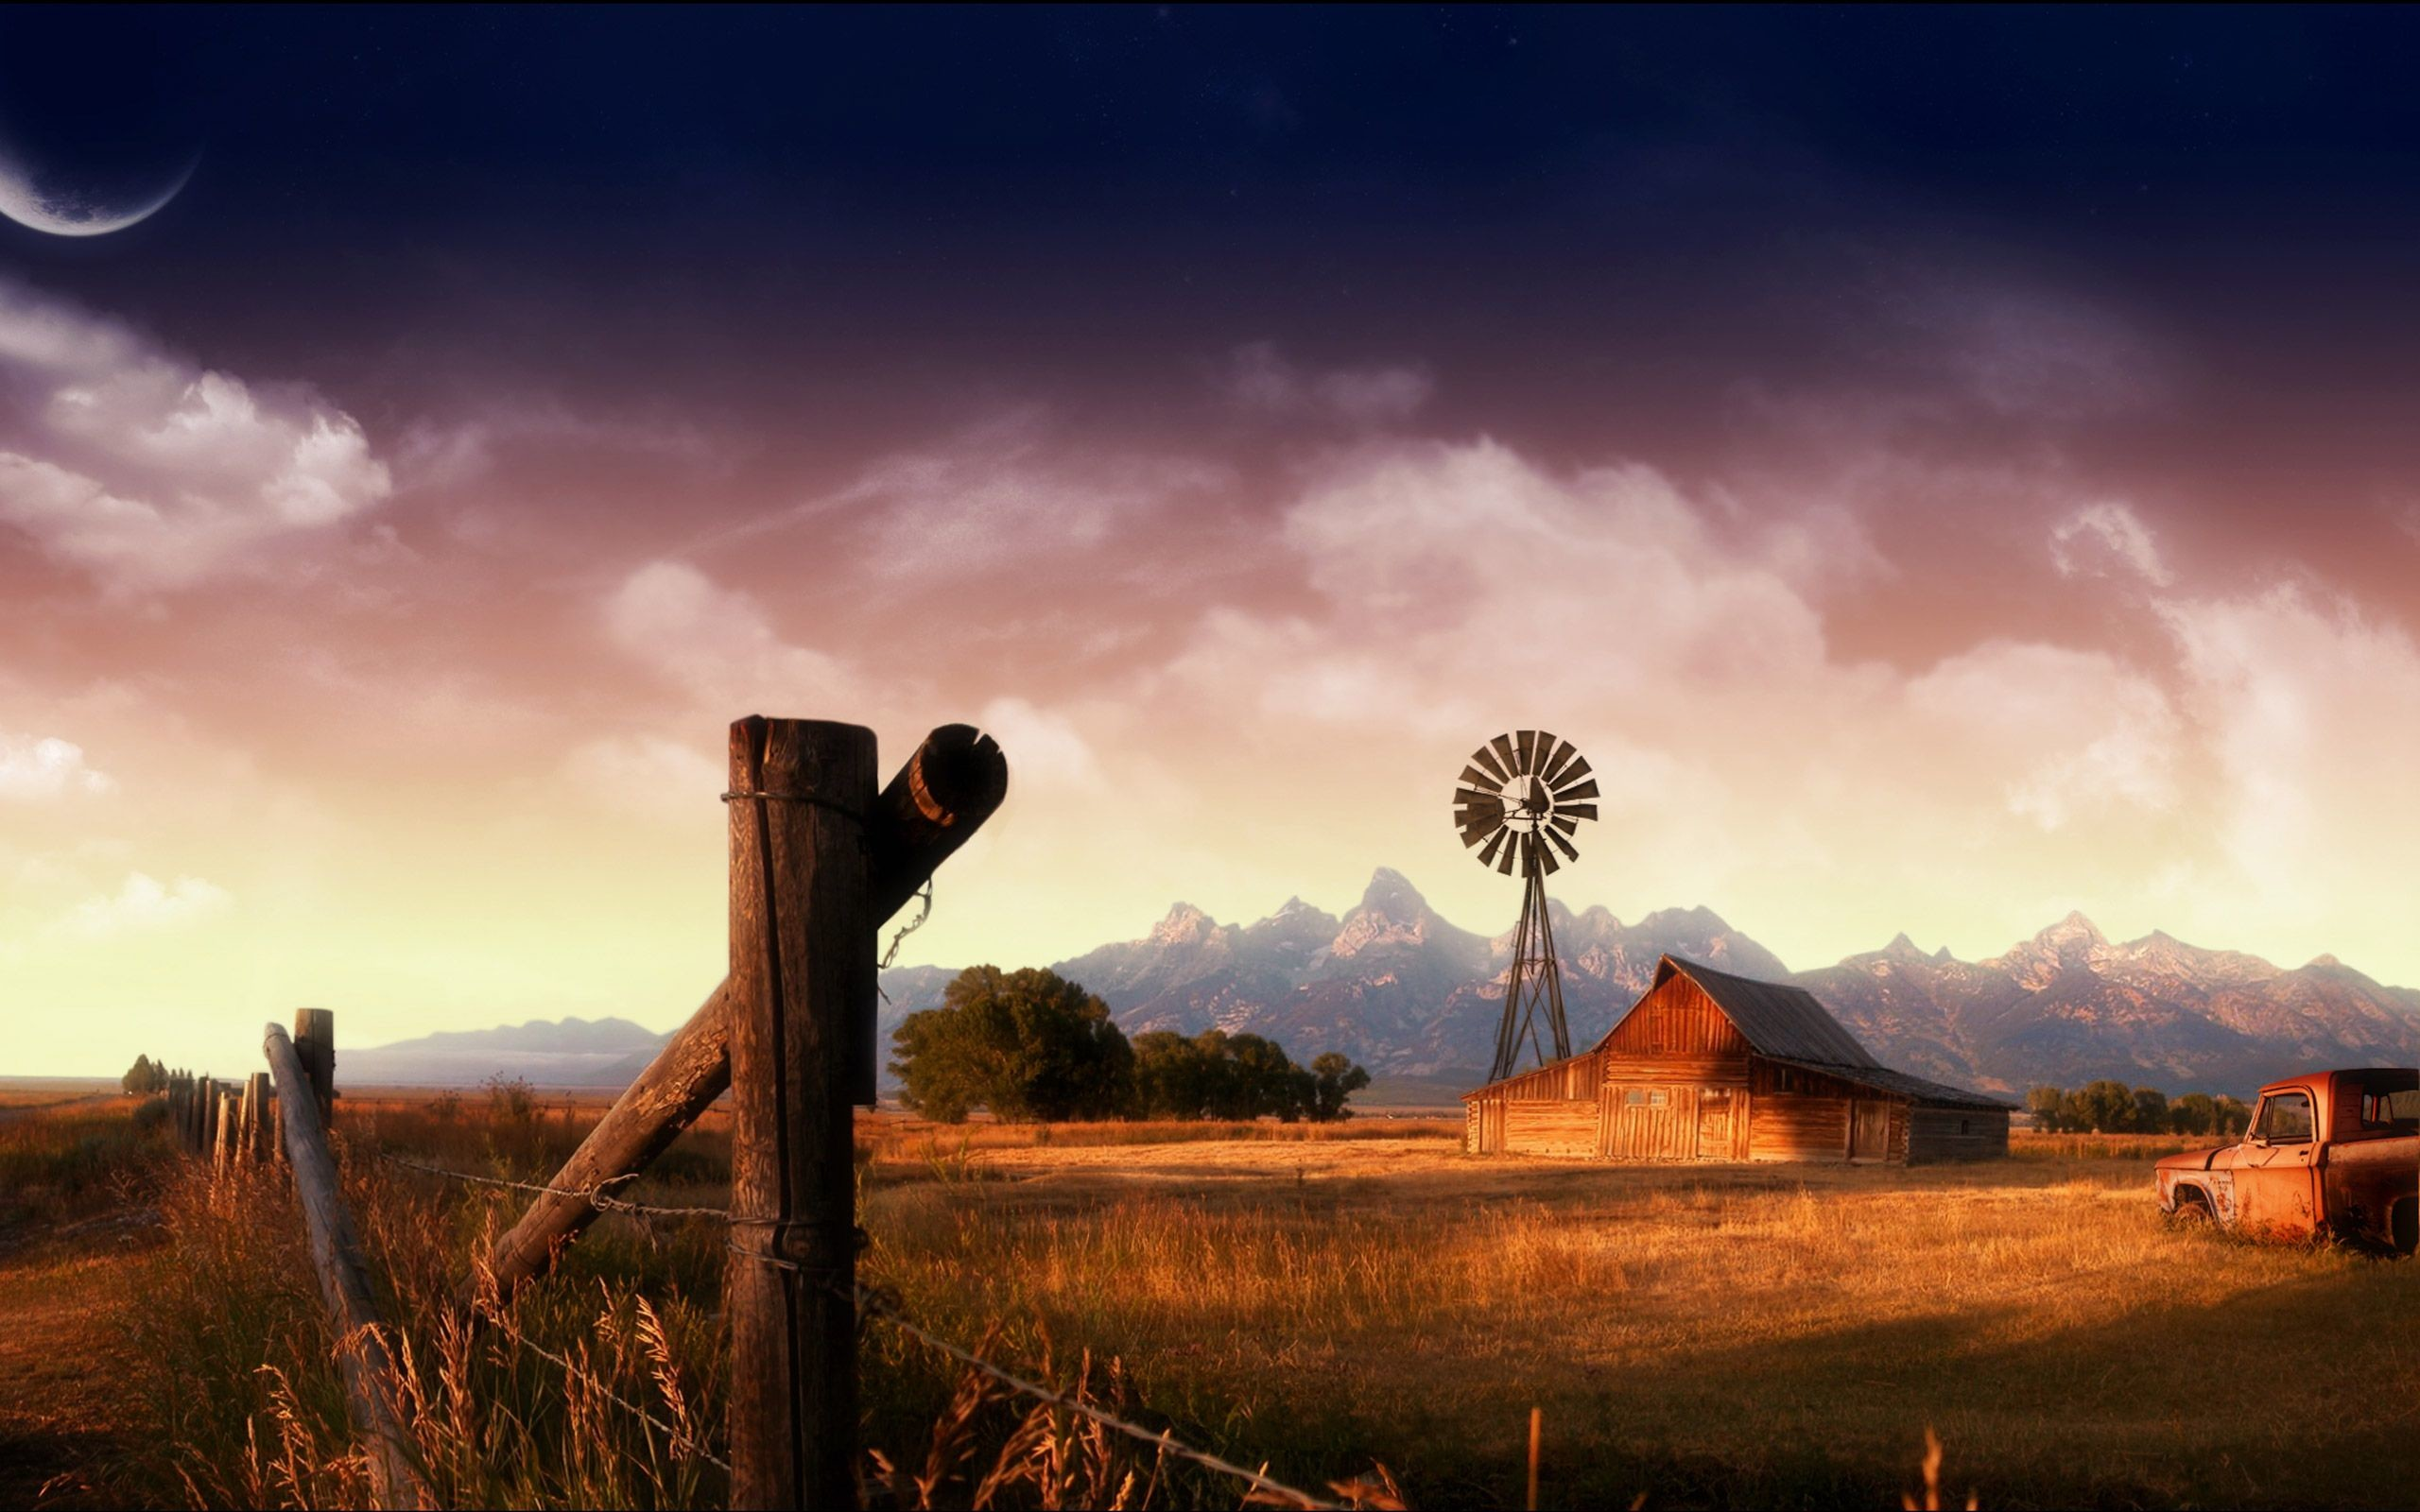 Res: 2560x1600, Download Country Boy Wallpaper Images Free -